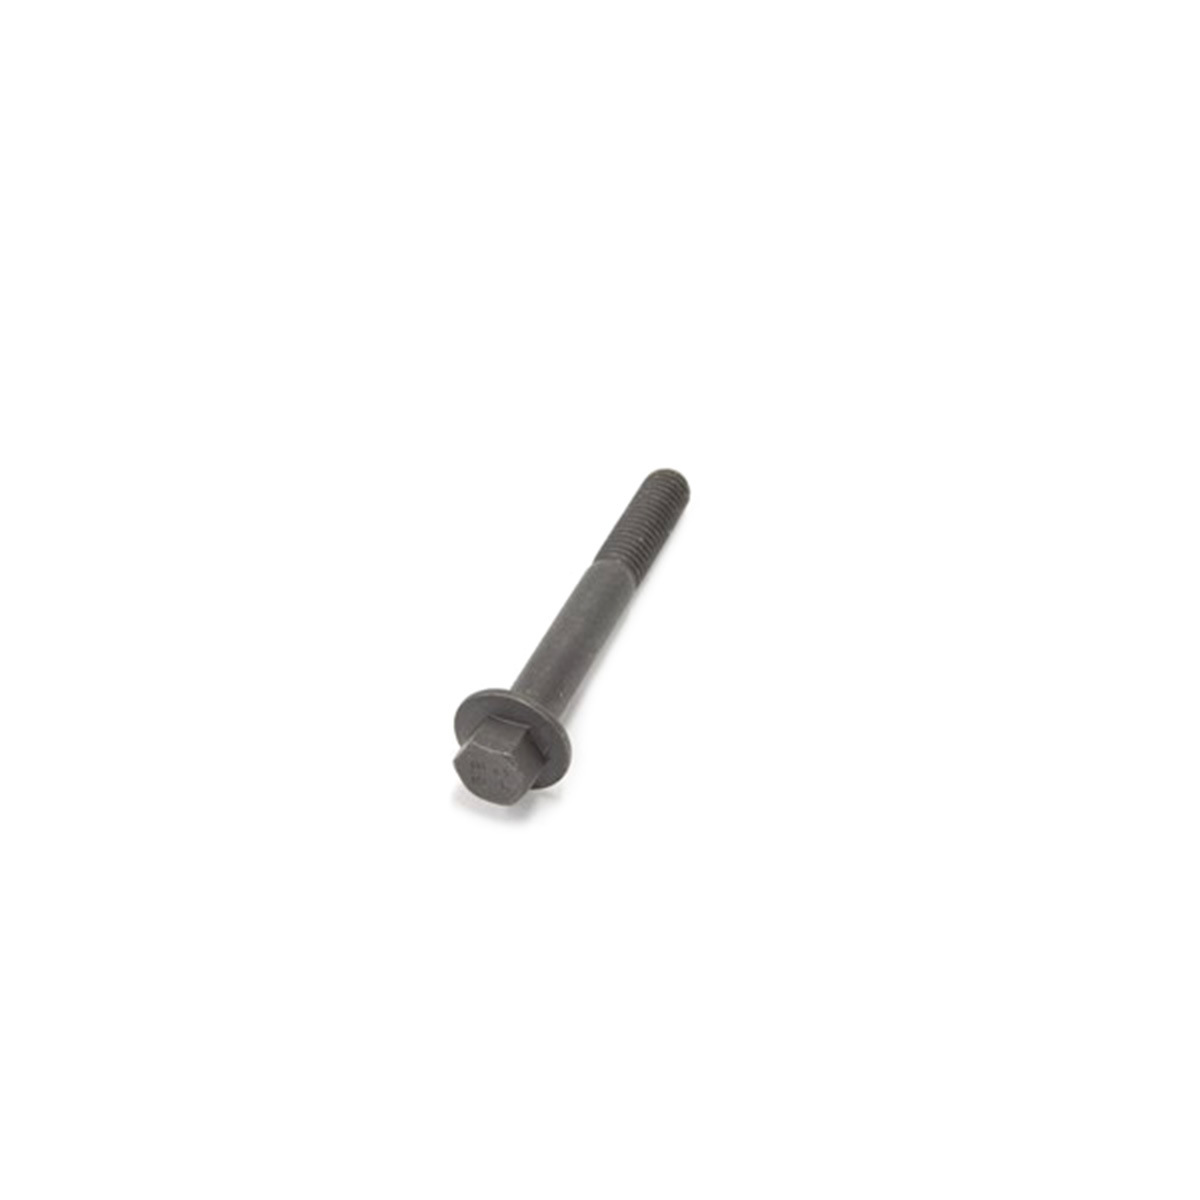 Scag Hex Flange Bolt M8-1.25 x 60MM HG50969